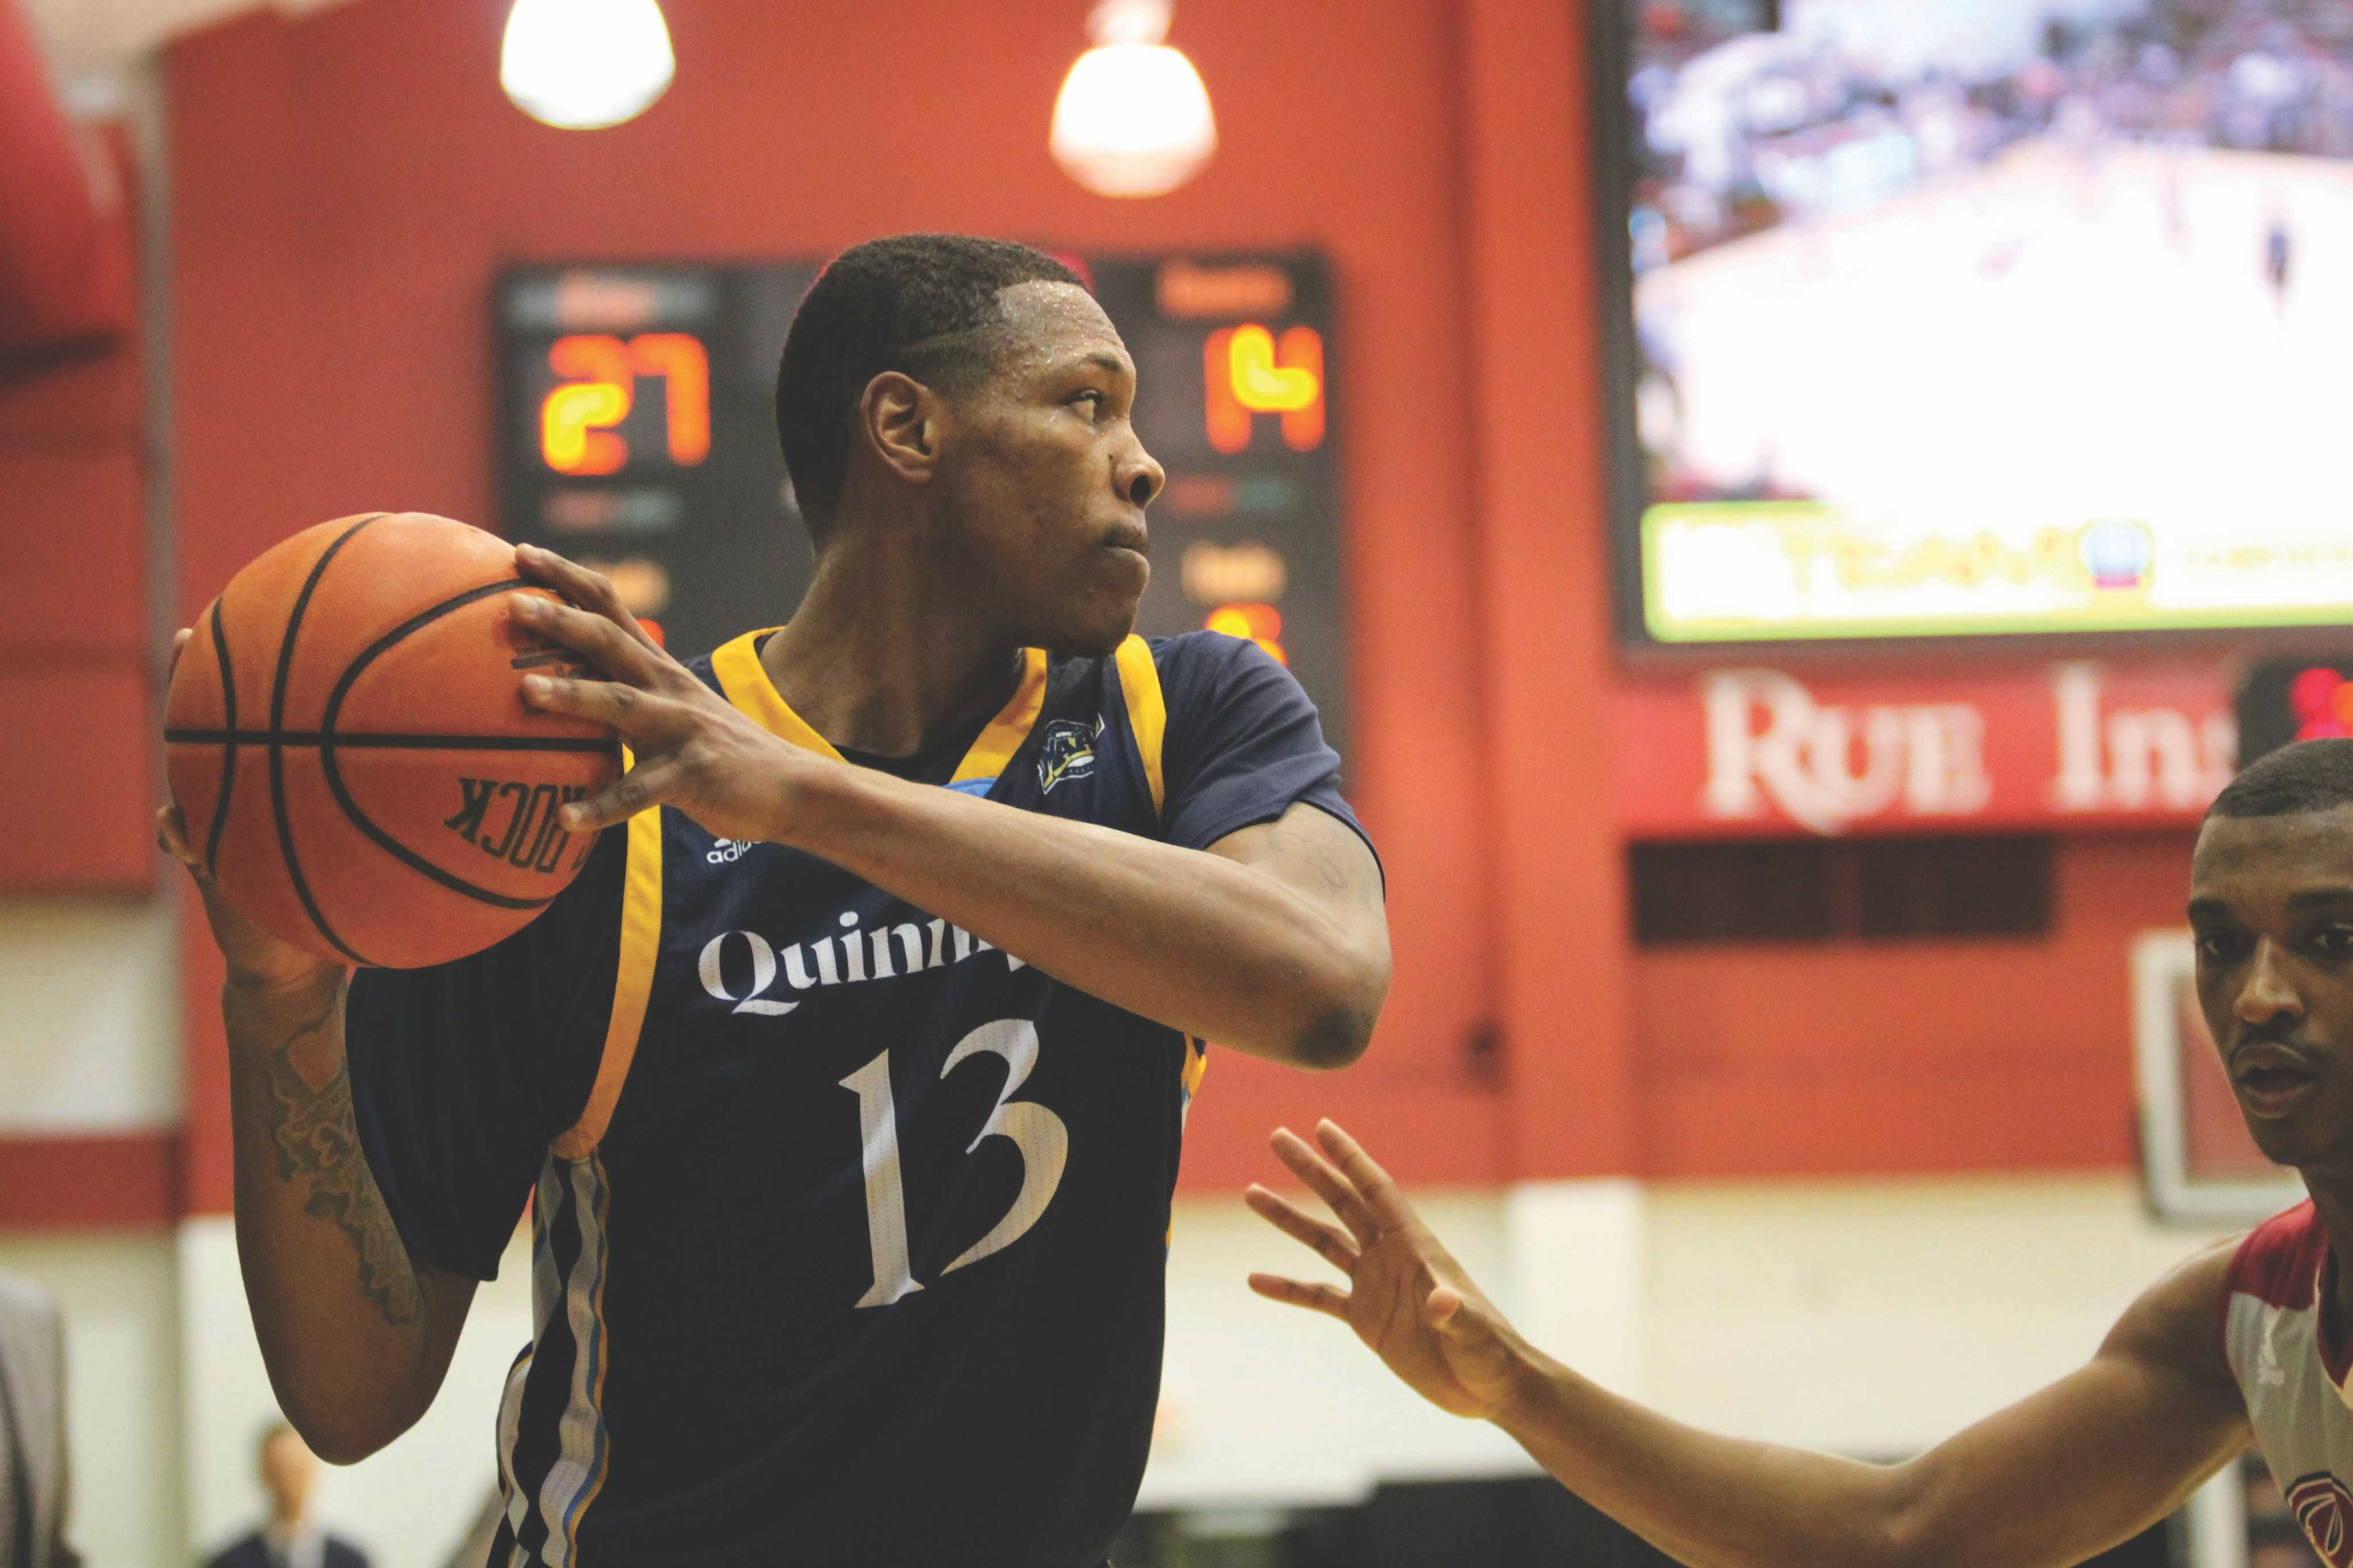 Former Quinnipiac men's basketball player arrested in Hamden